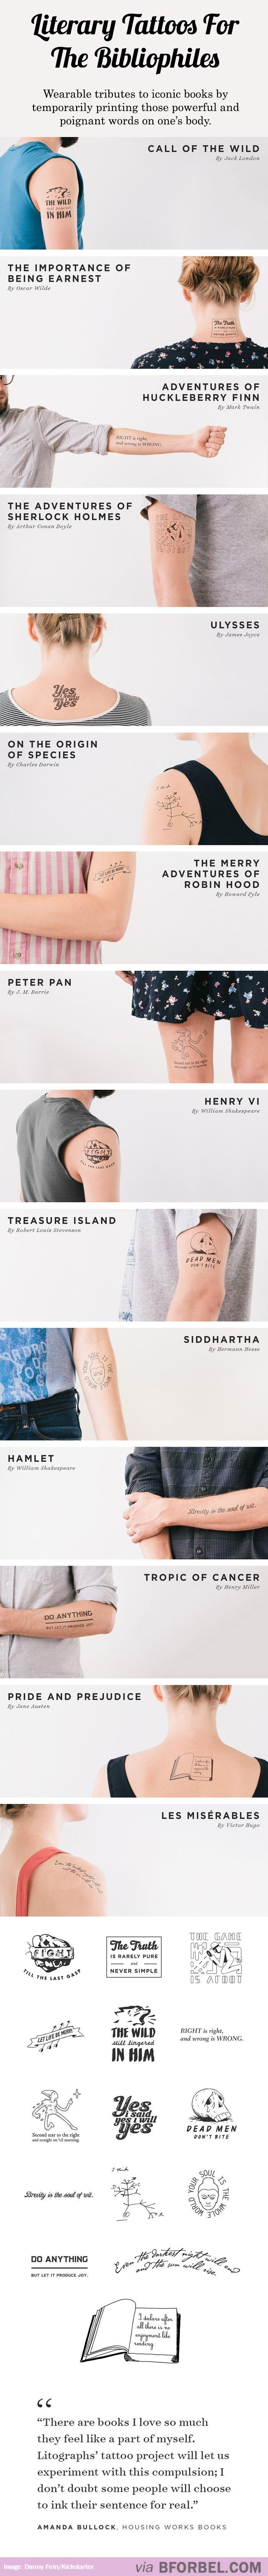 15 Literary Tattoos For The Bibliophiles...